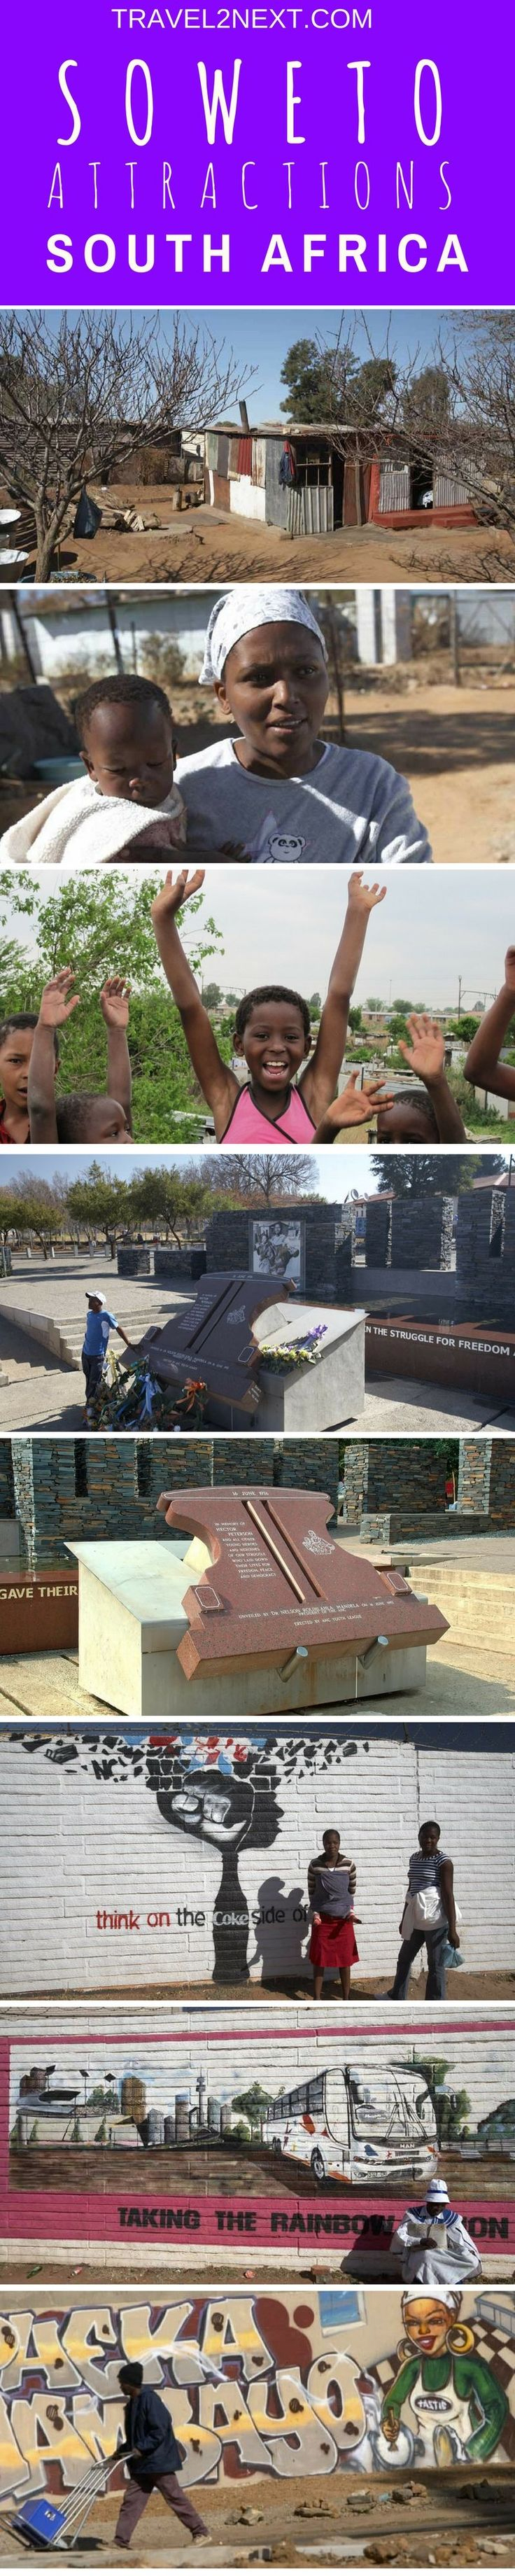 Soweto Attractions. A tour of Soweto South Africa reveals the heart and soul of Johannesburg.